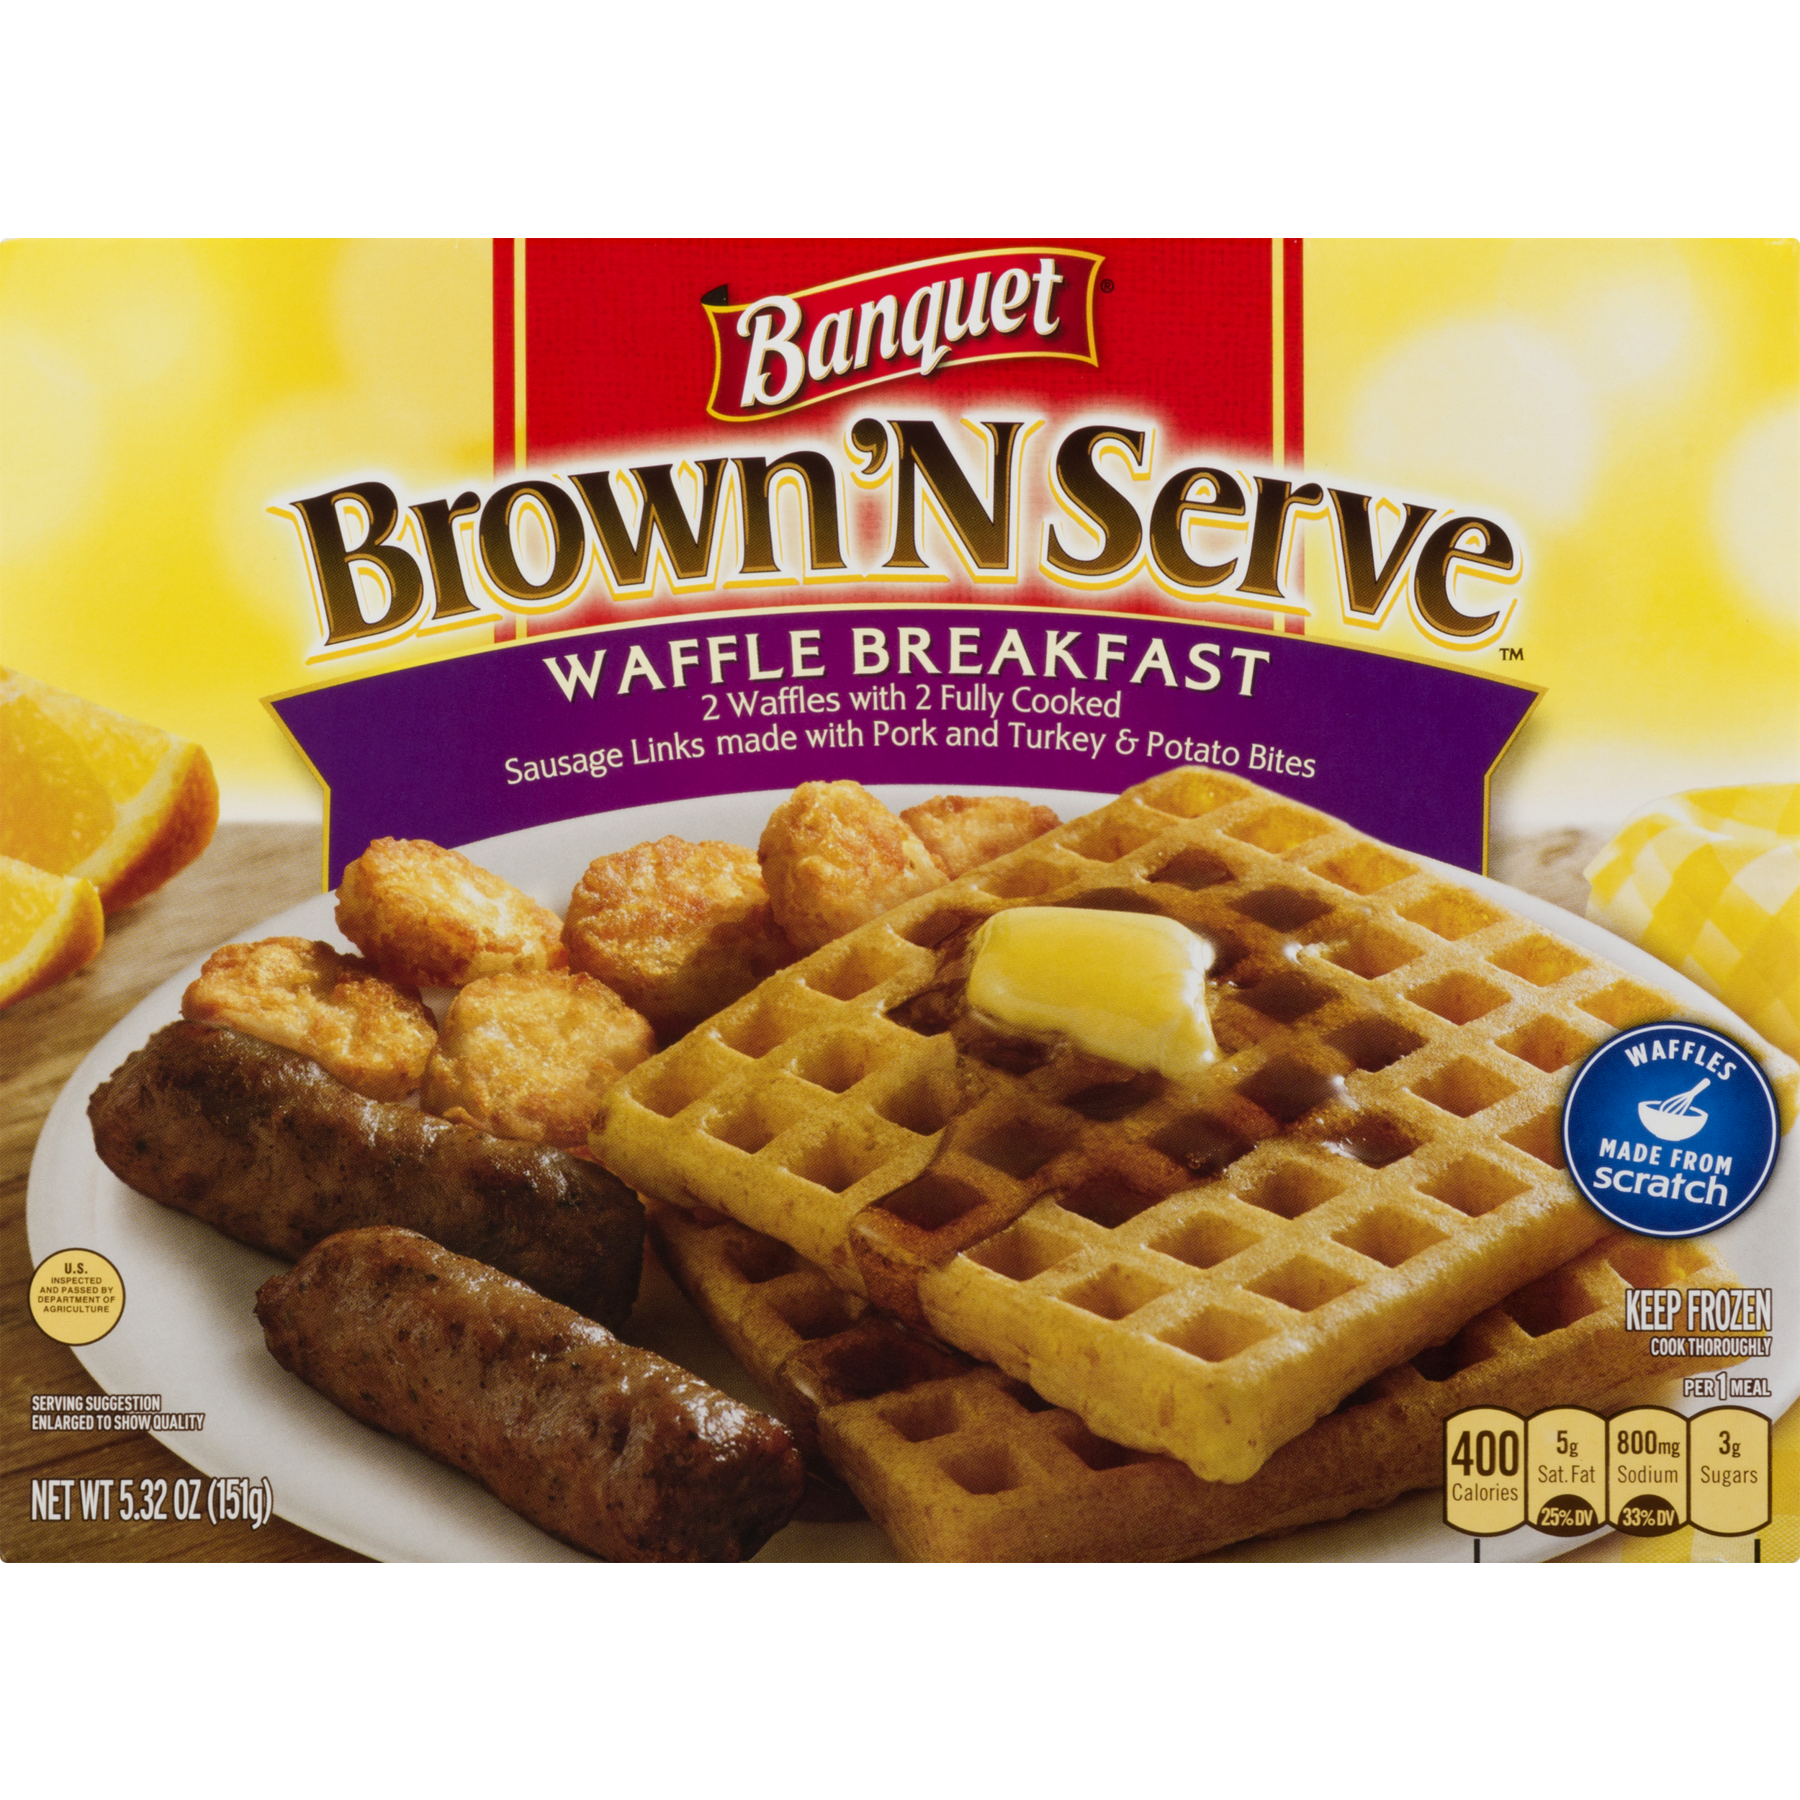 Waffles transparent brown sugar. Banquet n serve waffle